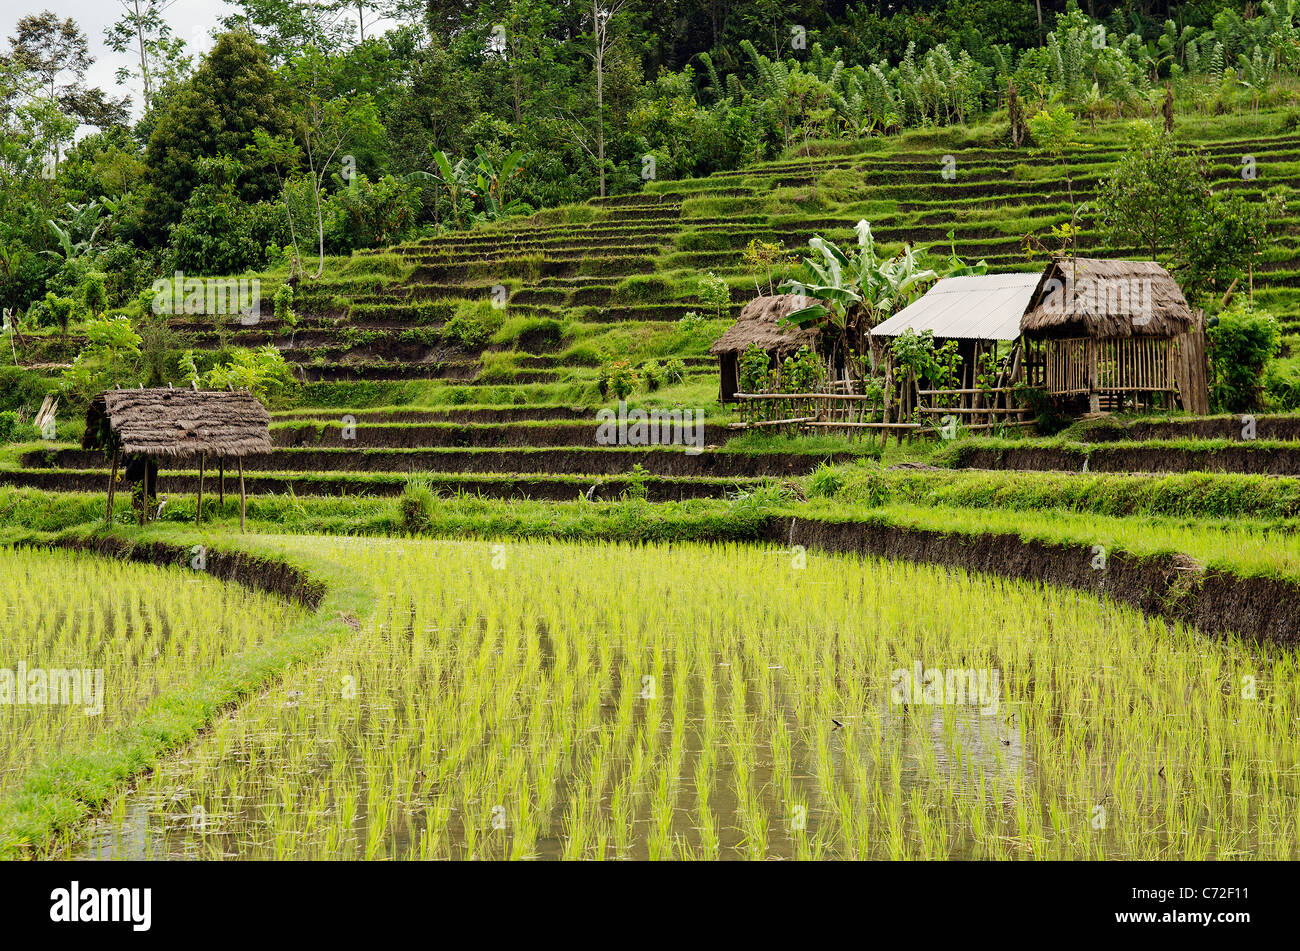 rice field and houses in bali indonesia - Stock Image